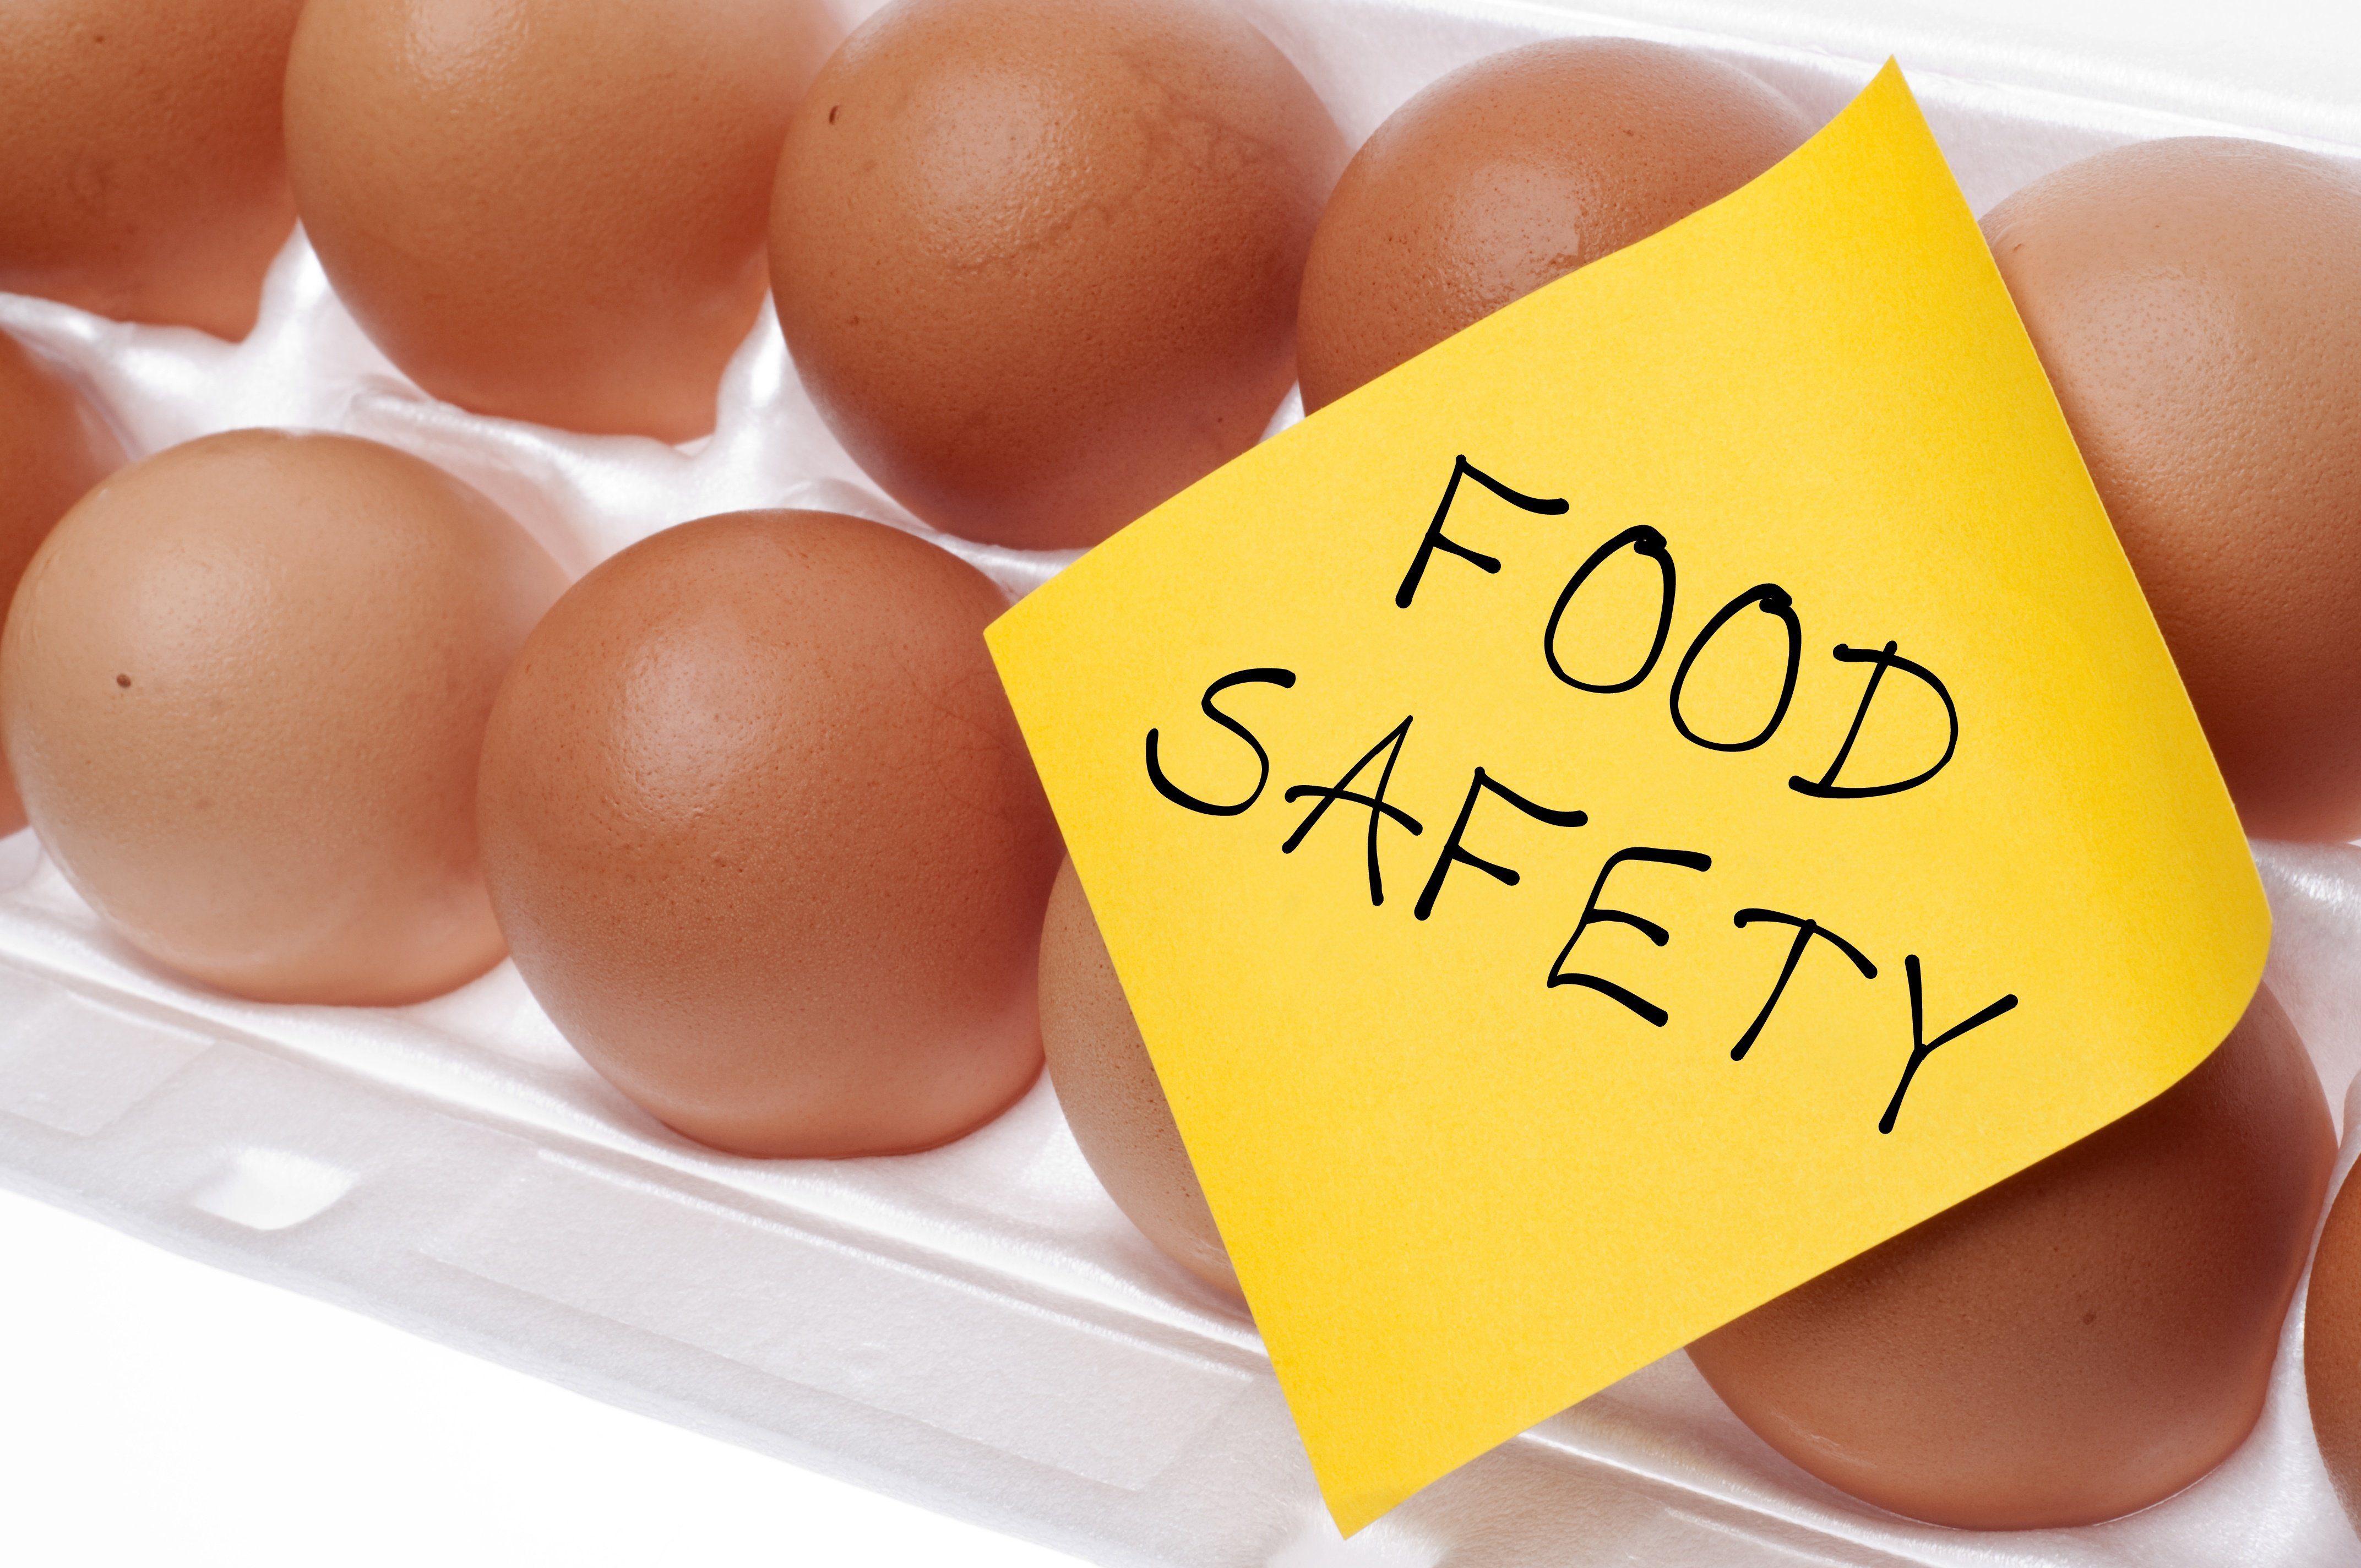 food standards in sports nutrition manufacture